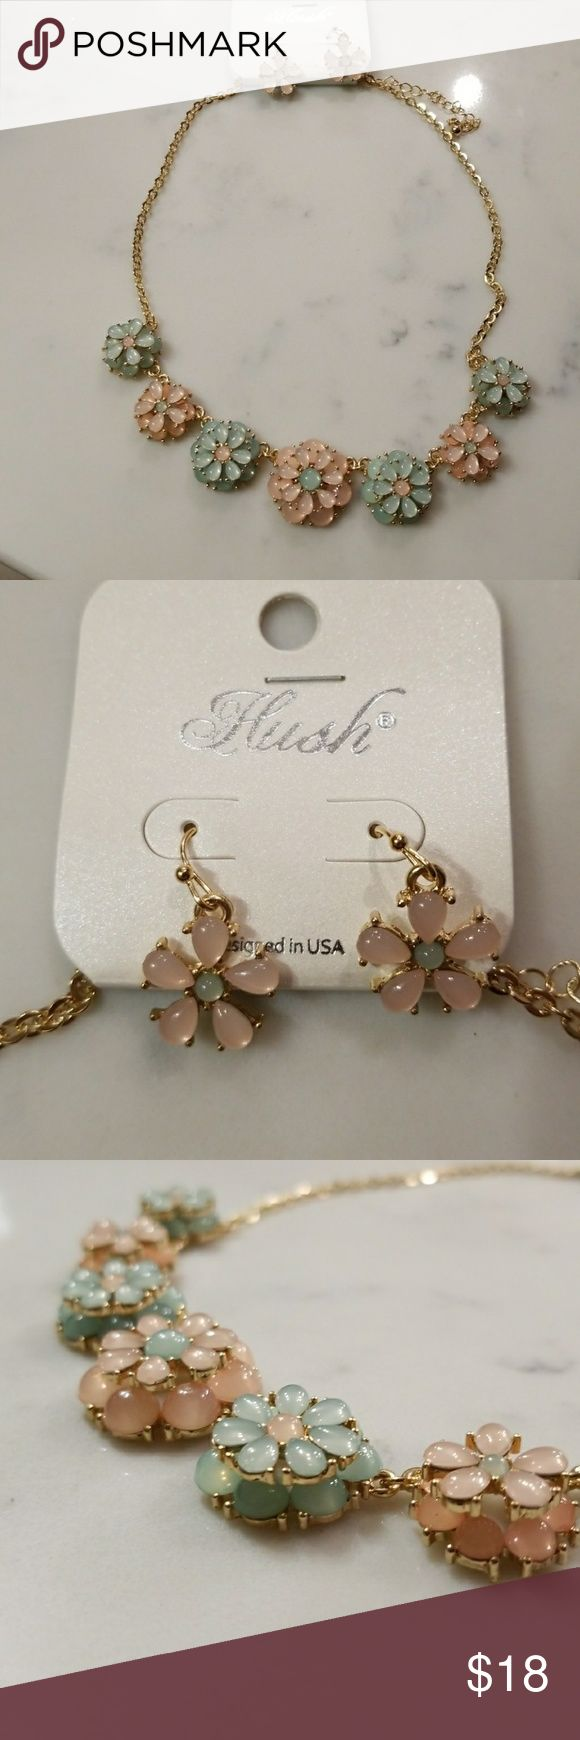 SALE!! Retro style floral statement necklace Really cute, retro style statement necklace, gold tone with pale pink and green layered flowers. Matching earrings included.  Boutique piece, NWT. Make me an offer or bundle for a discount! Hush Jewelry Necklaces